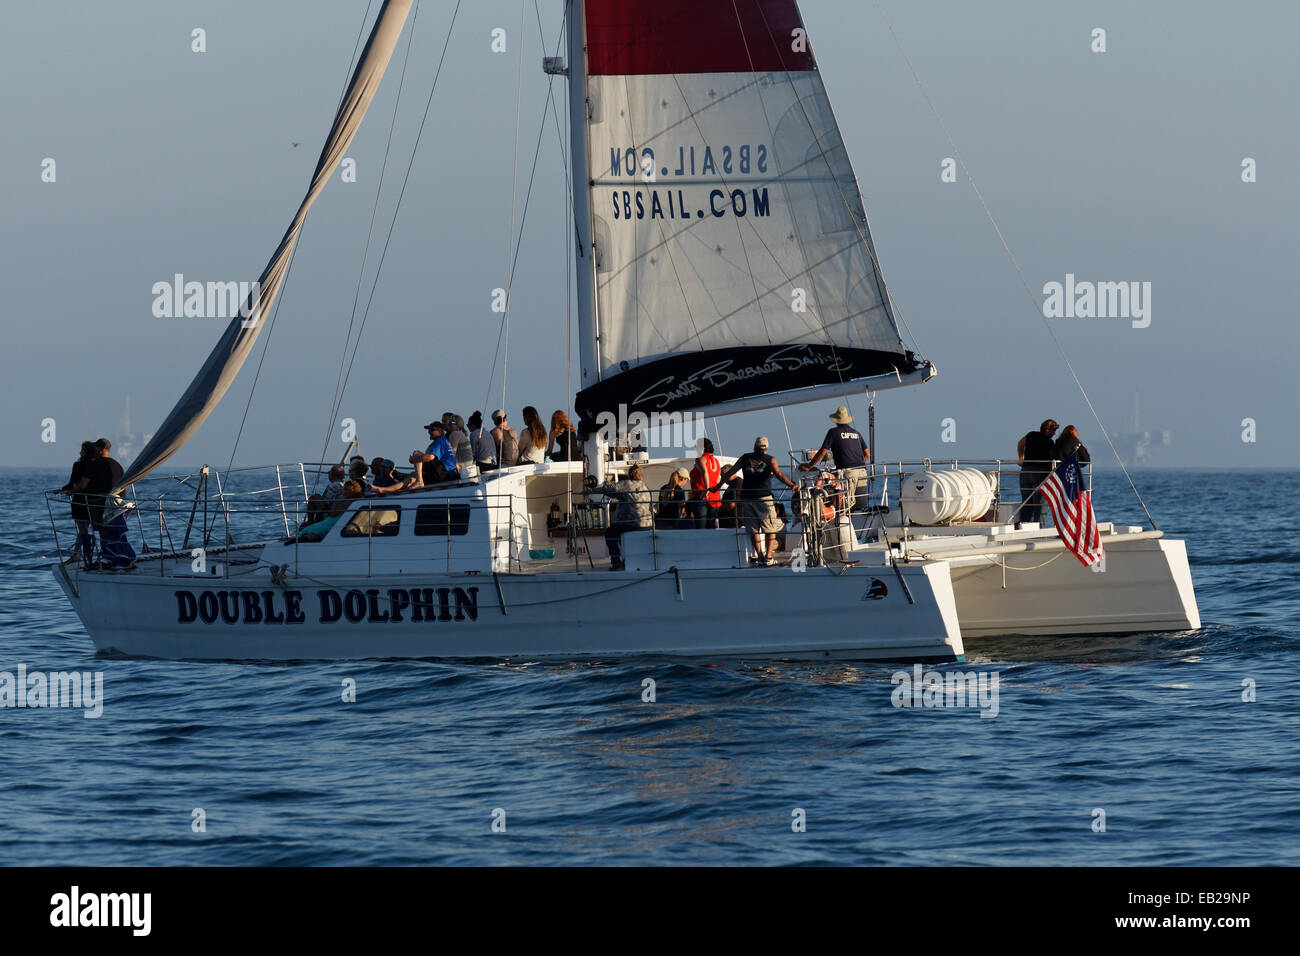 Siteseeing Catamaran sailing off the coast of Santa Barbara, California USA - Stock Image